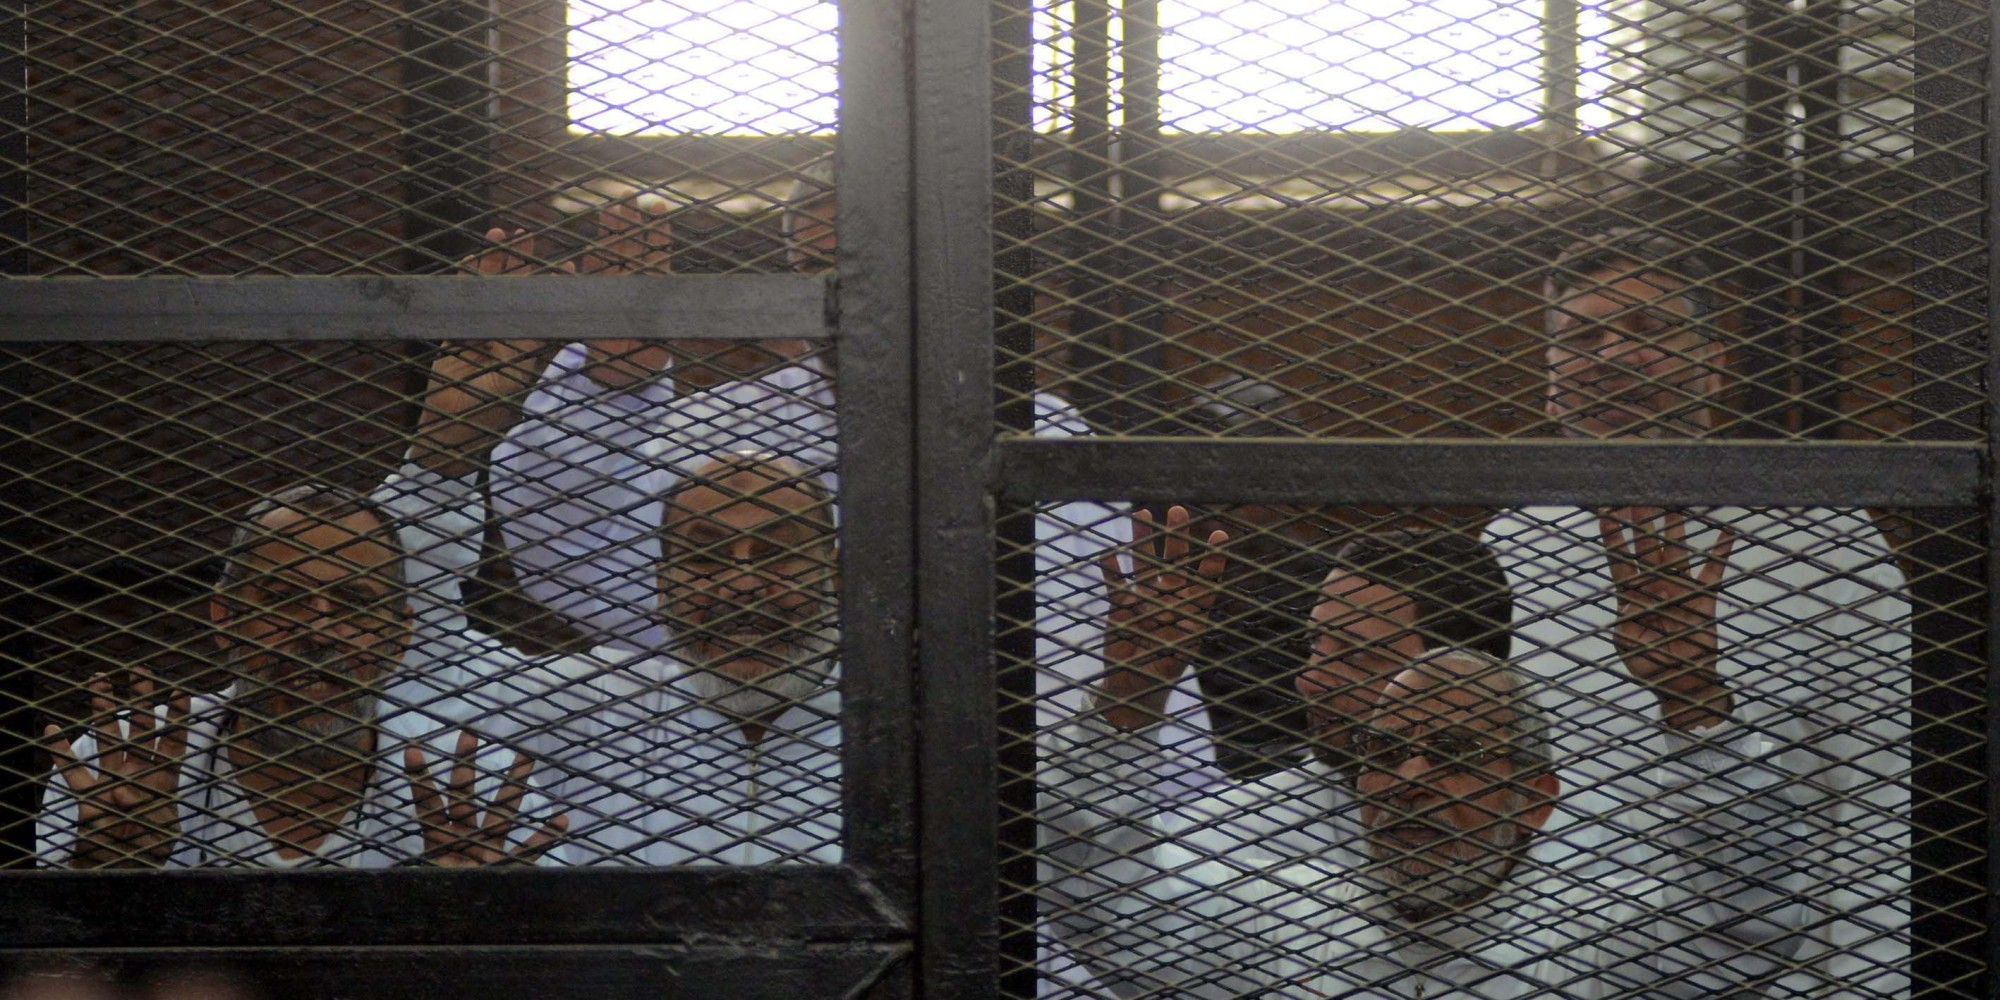 Muslim Brotherhood savages in their cages during the trial.